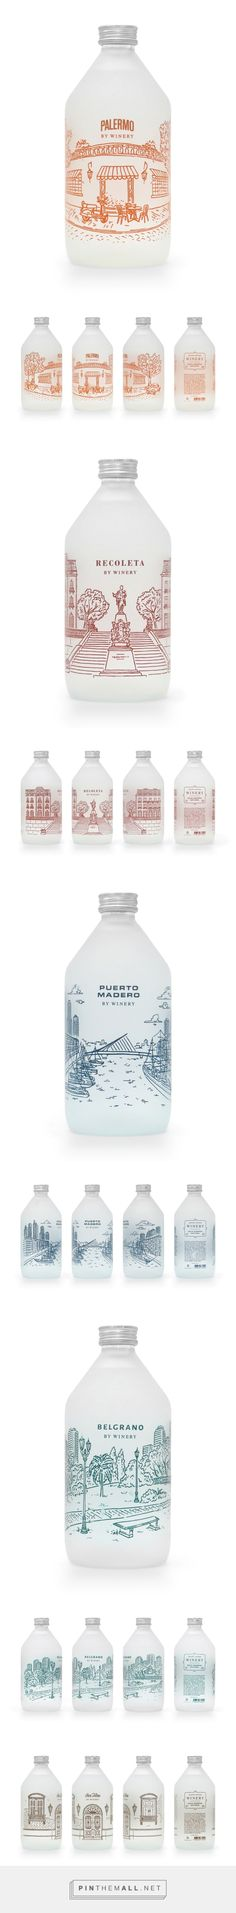 Winery Gota Water on Behance by Juan Martín Krause, Buenos Aires, Argentina curated by Packaging Diva PD. Great illustrations on these unusual wine bottles. Graphic design, packaging, product design, illustration.